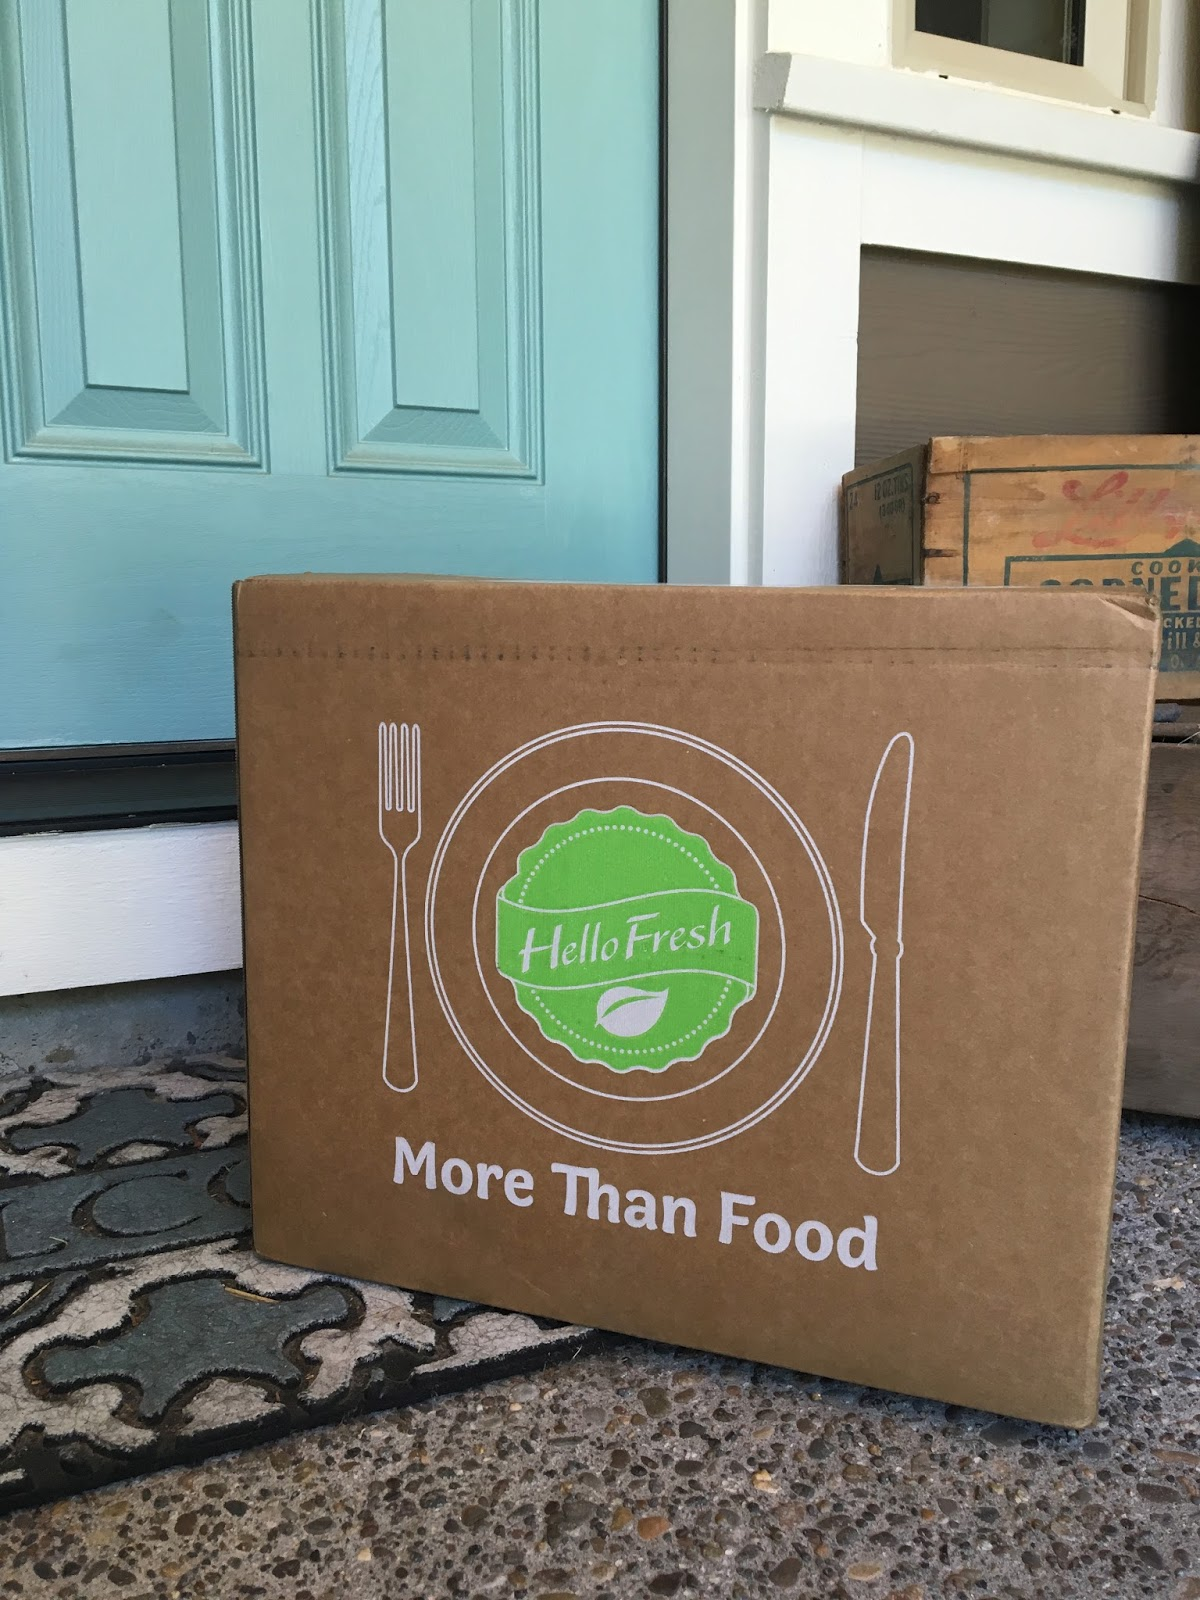 Blue apron promo code - With Blue Apron They Have Two Different Plans To Choose From A 2 Person And A Family Or 4 Person Plan The Two Person Is 59 99 For Three Meals And